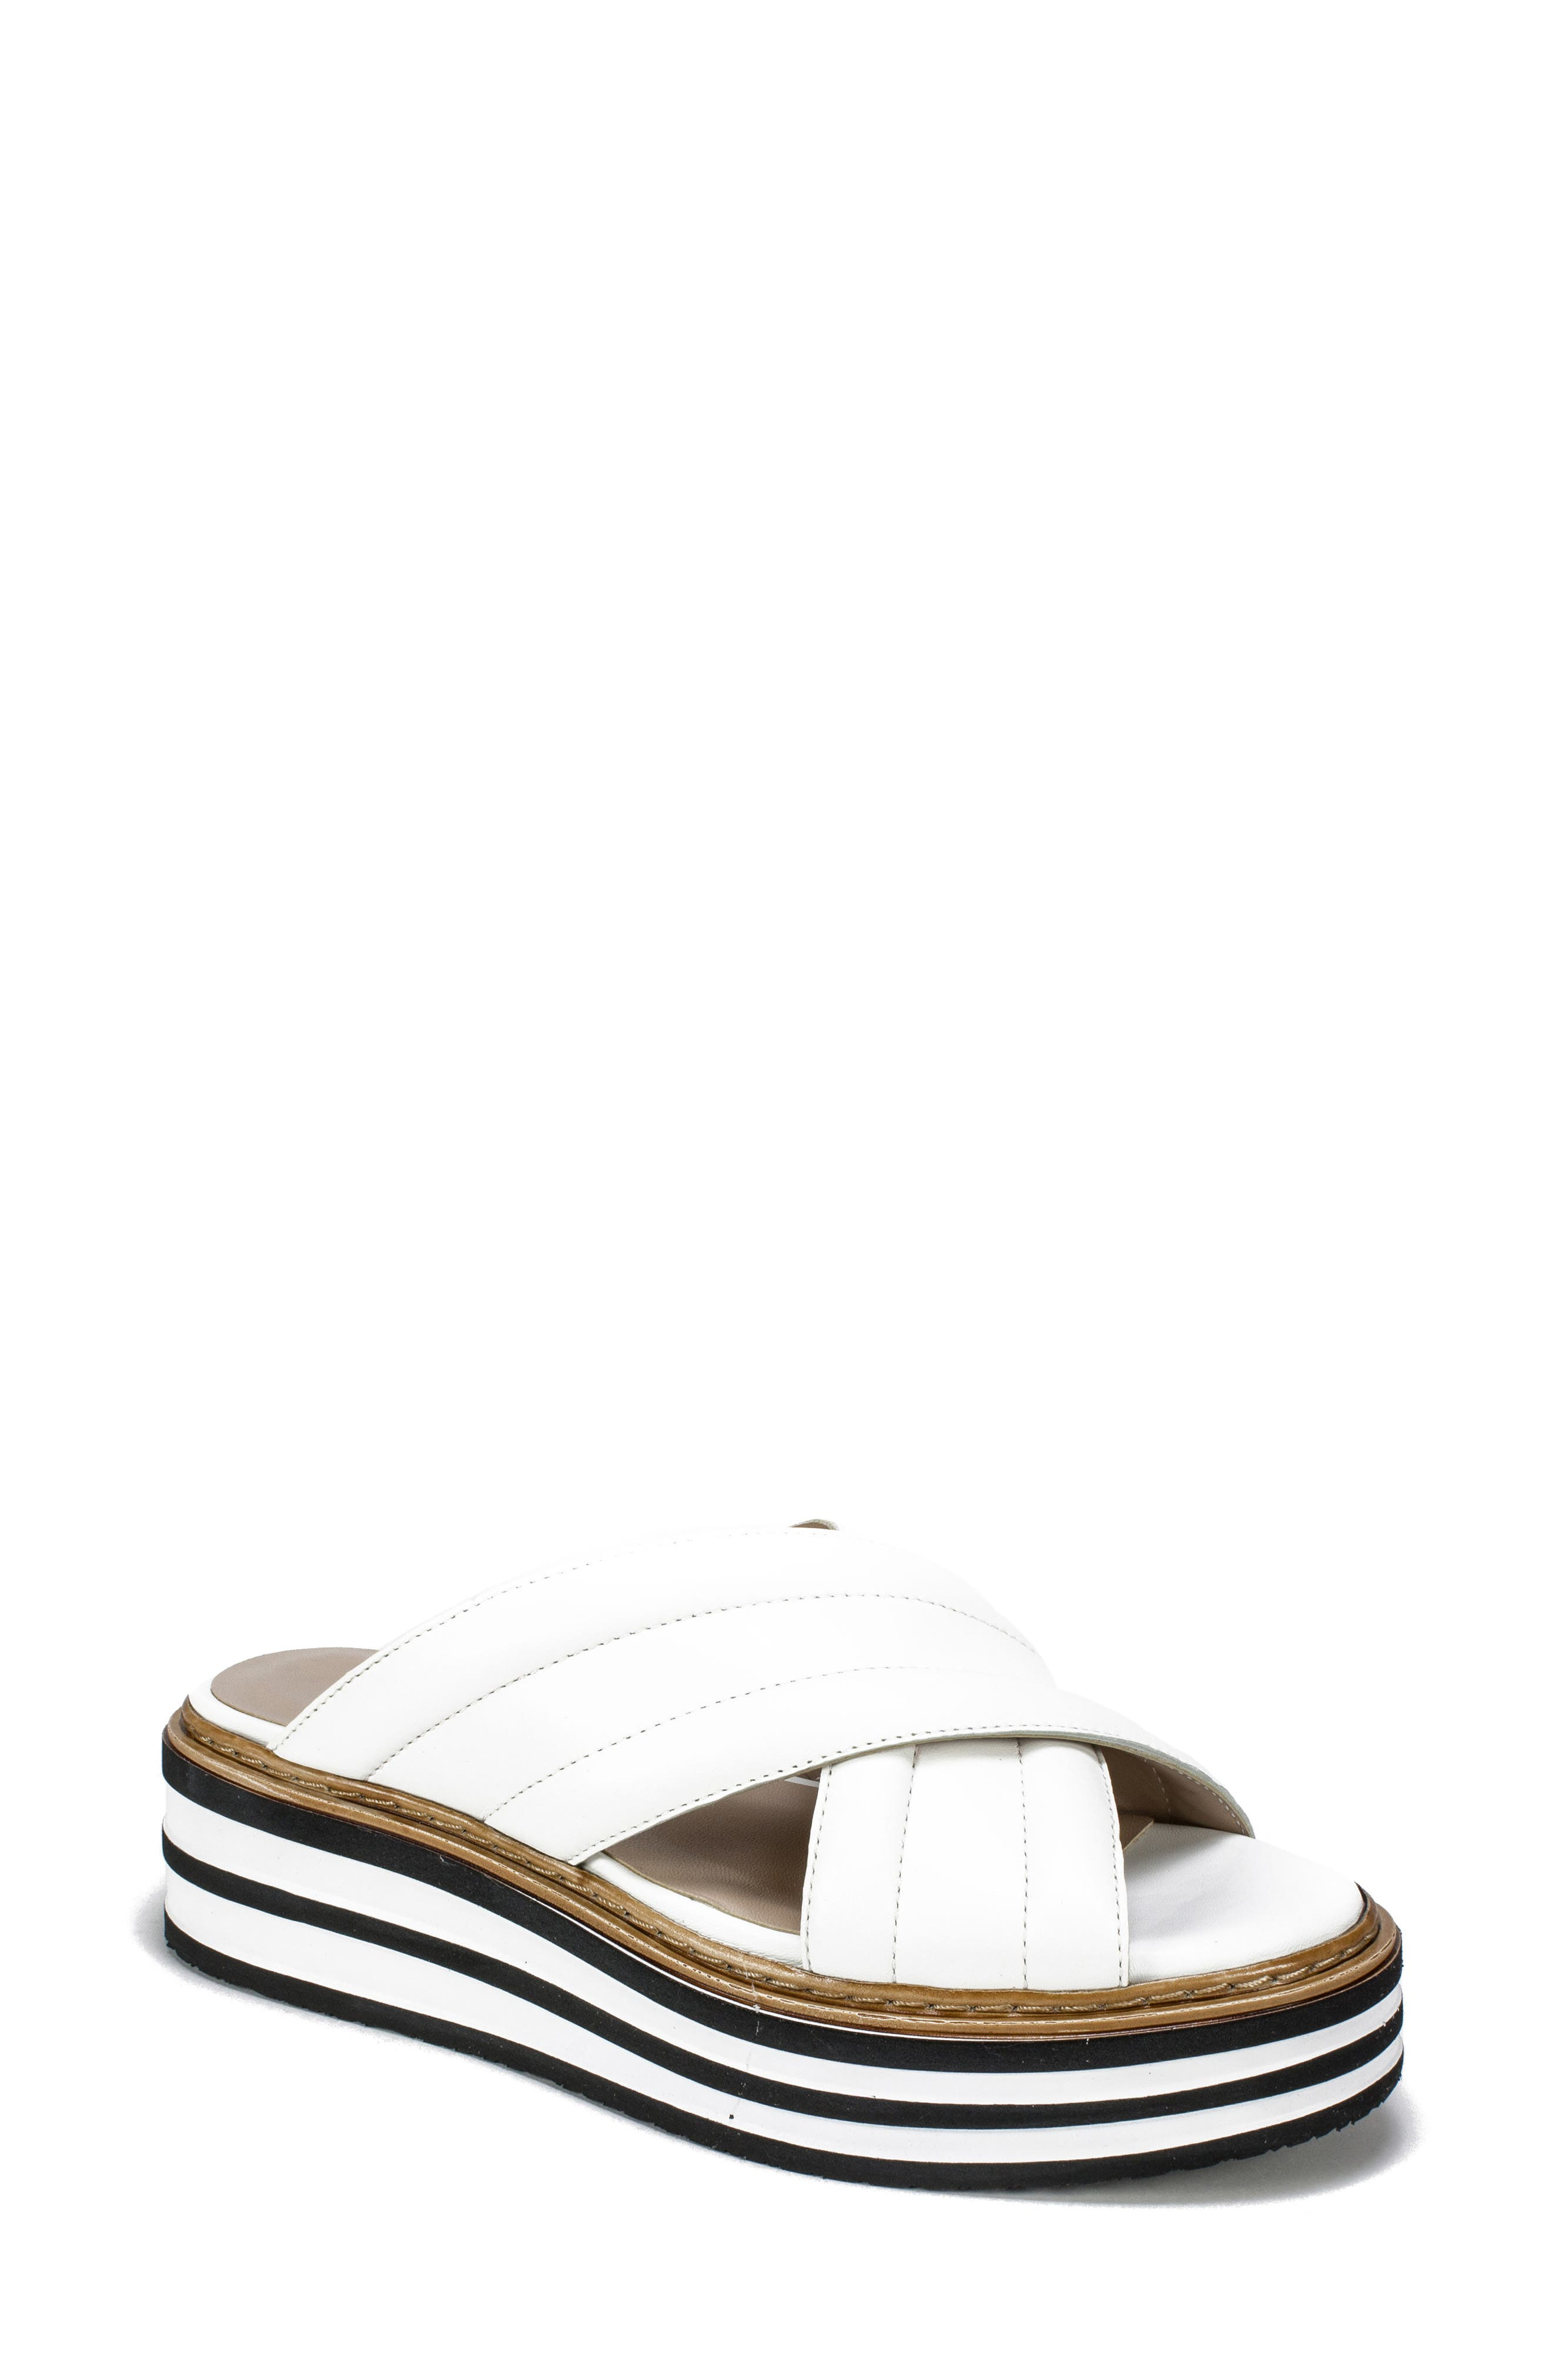 SUMMIT,                             by White Mountain Lowell Platform Slide Sandal,                             Main thumbnail 1, color,                             WHITE LEATHER